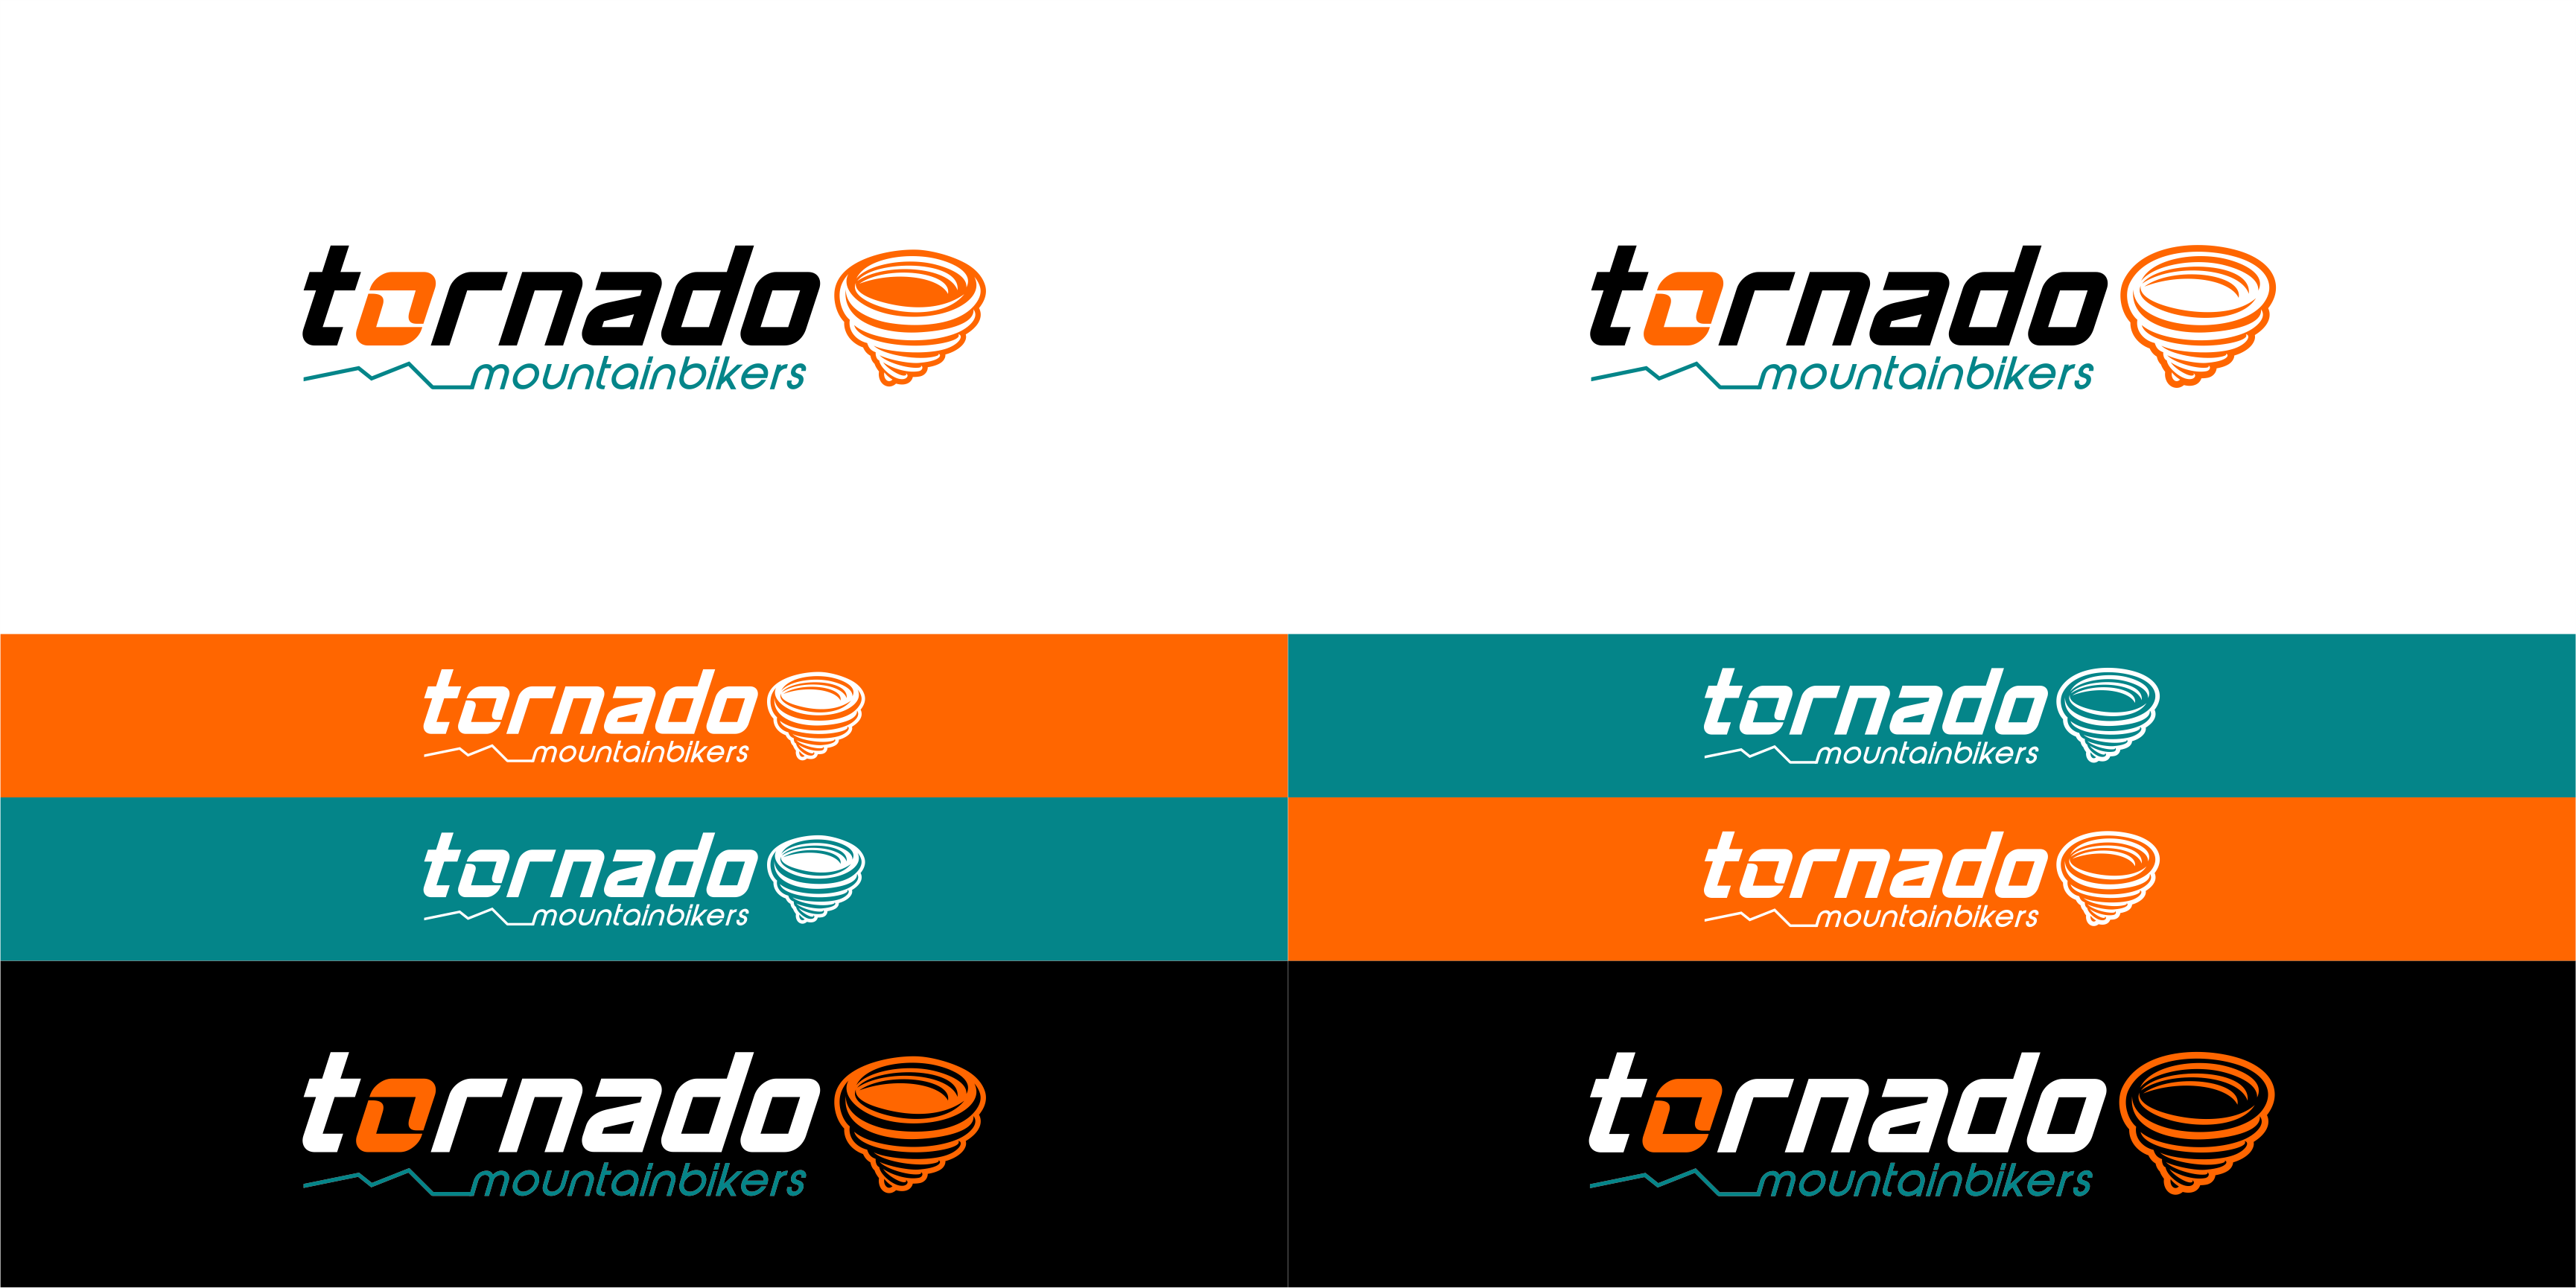 Create a blazing illustration for Tornado Mountainbikers